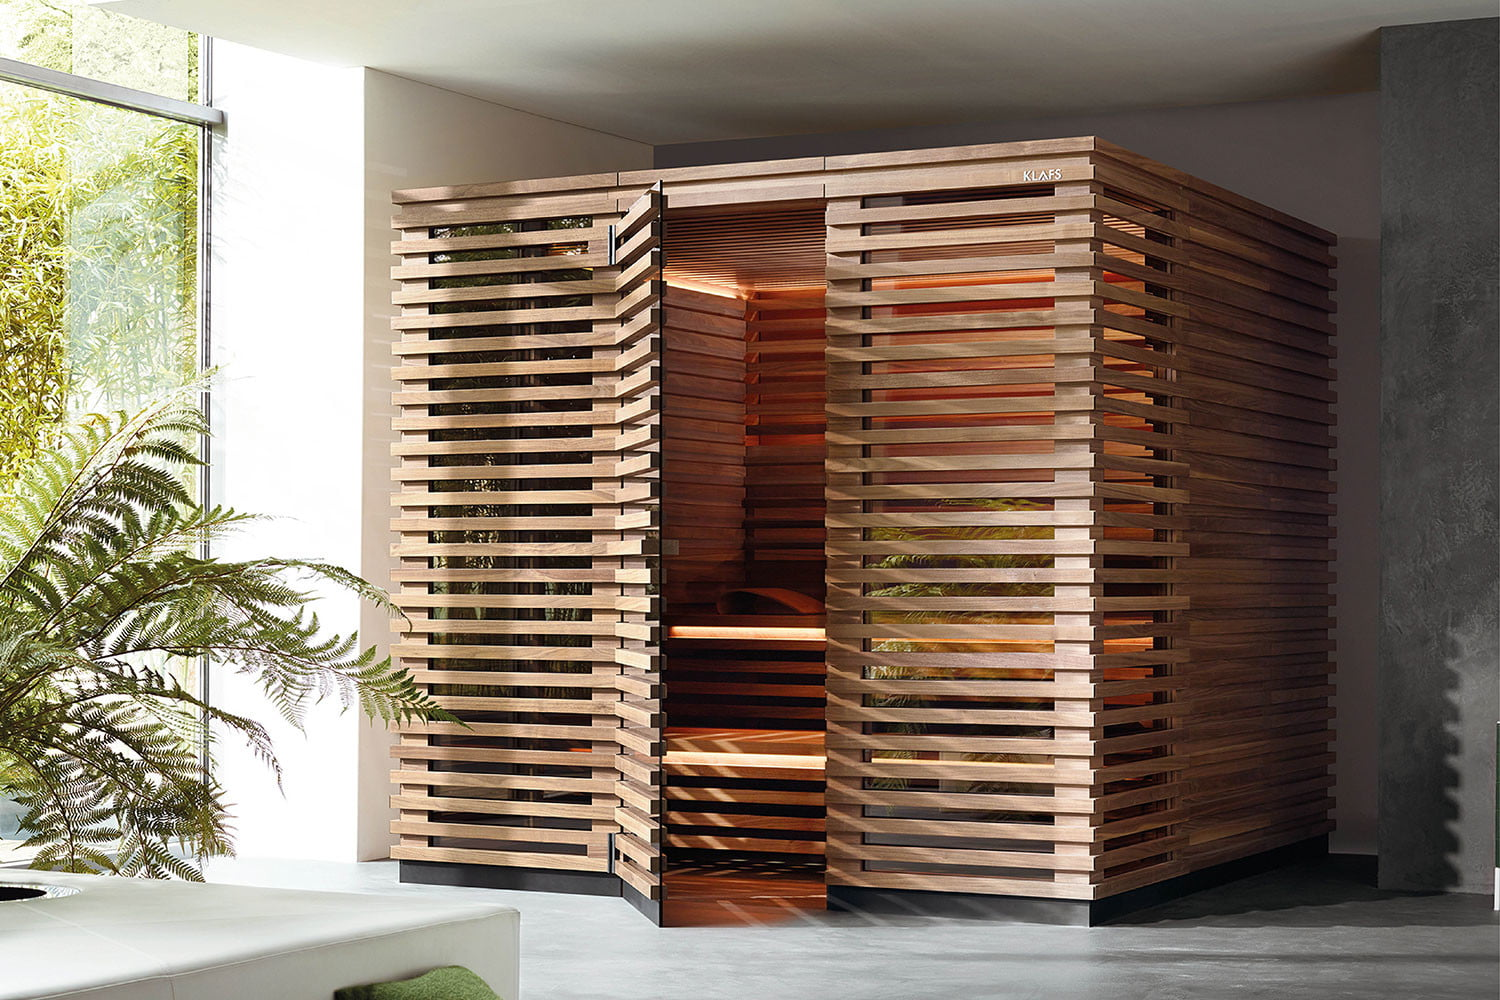 Klafs S1 Klafs S1 Sauna Is Meant To Fit In Apartments Digital Trends